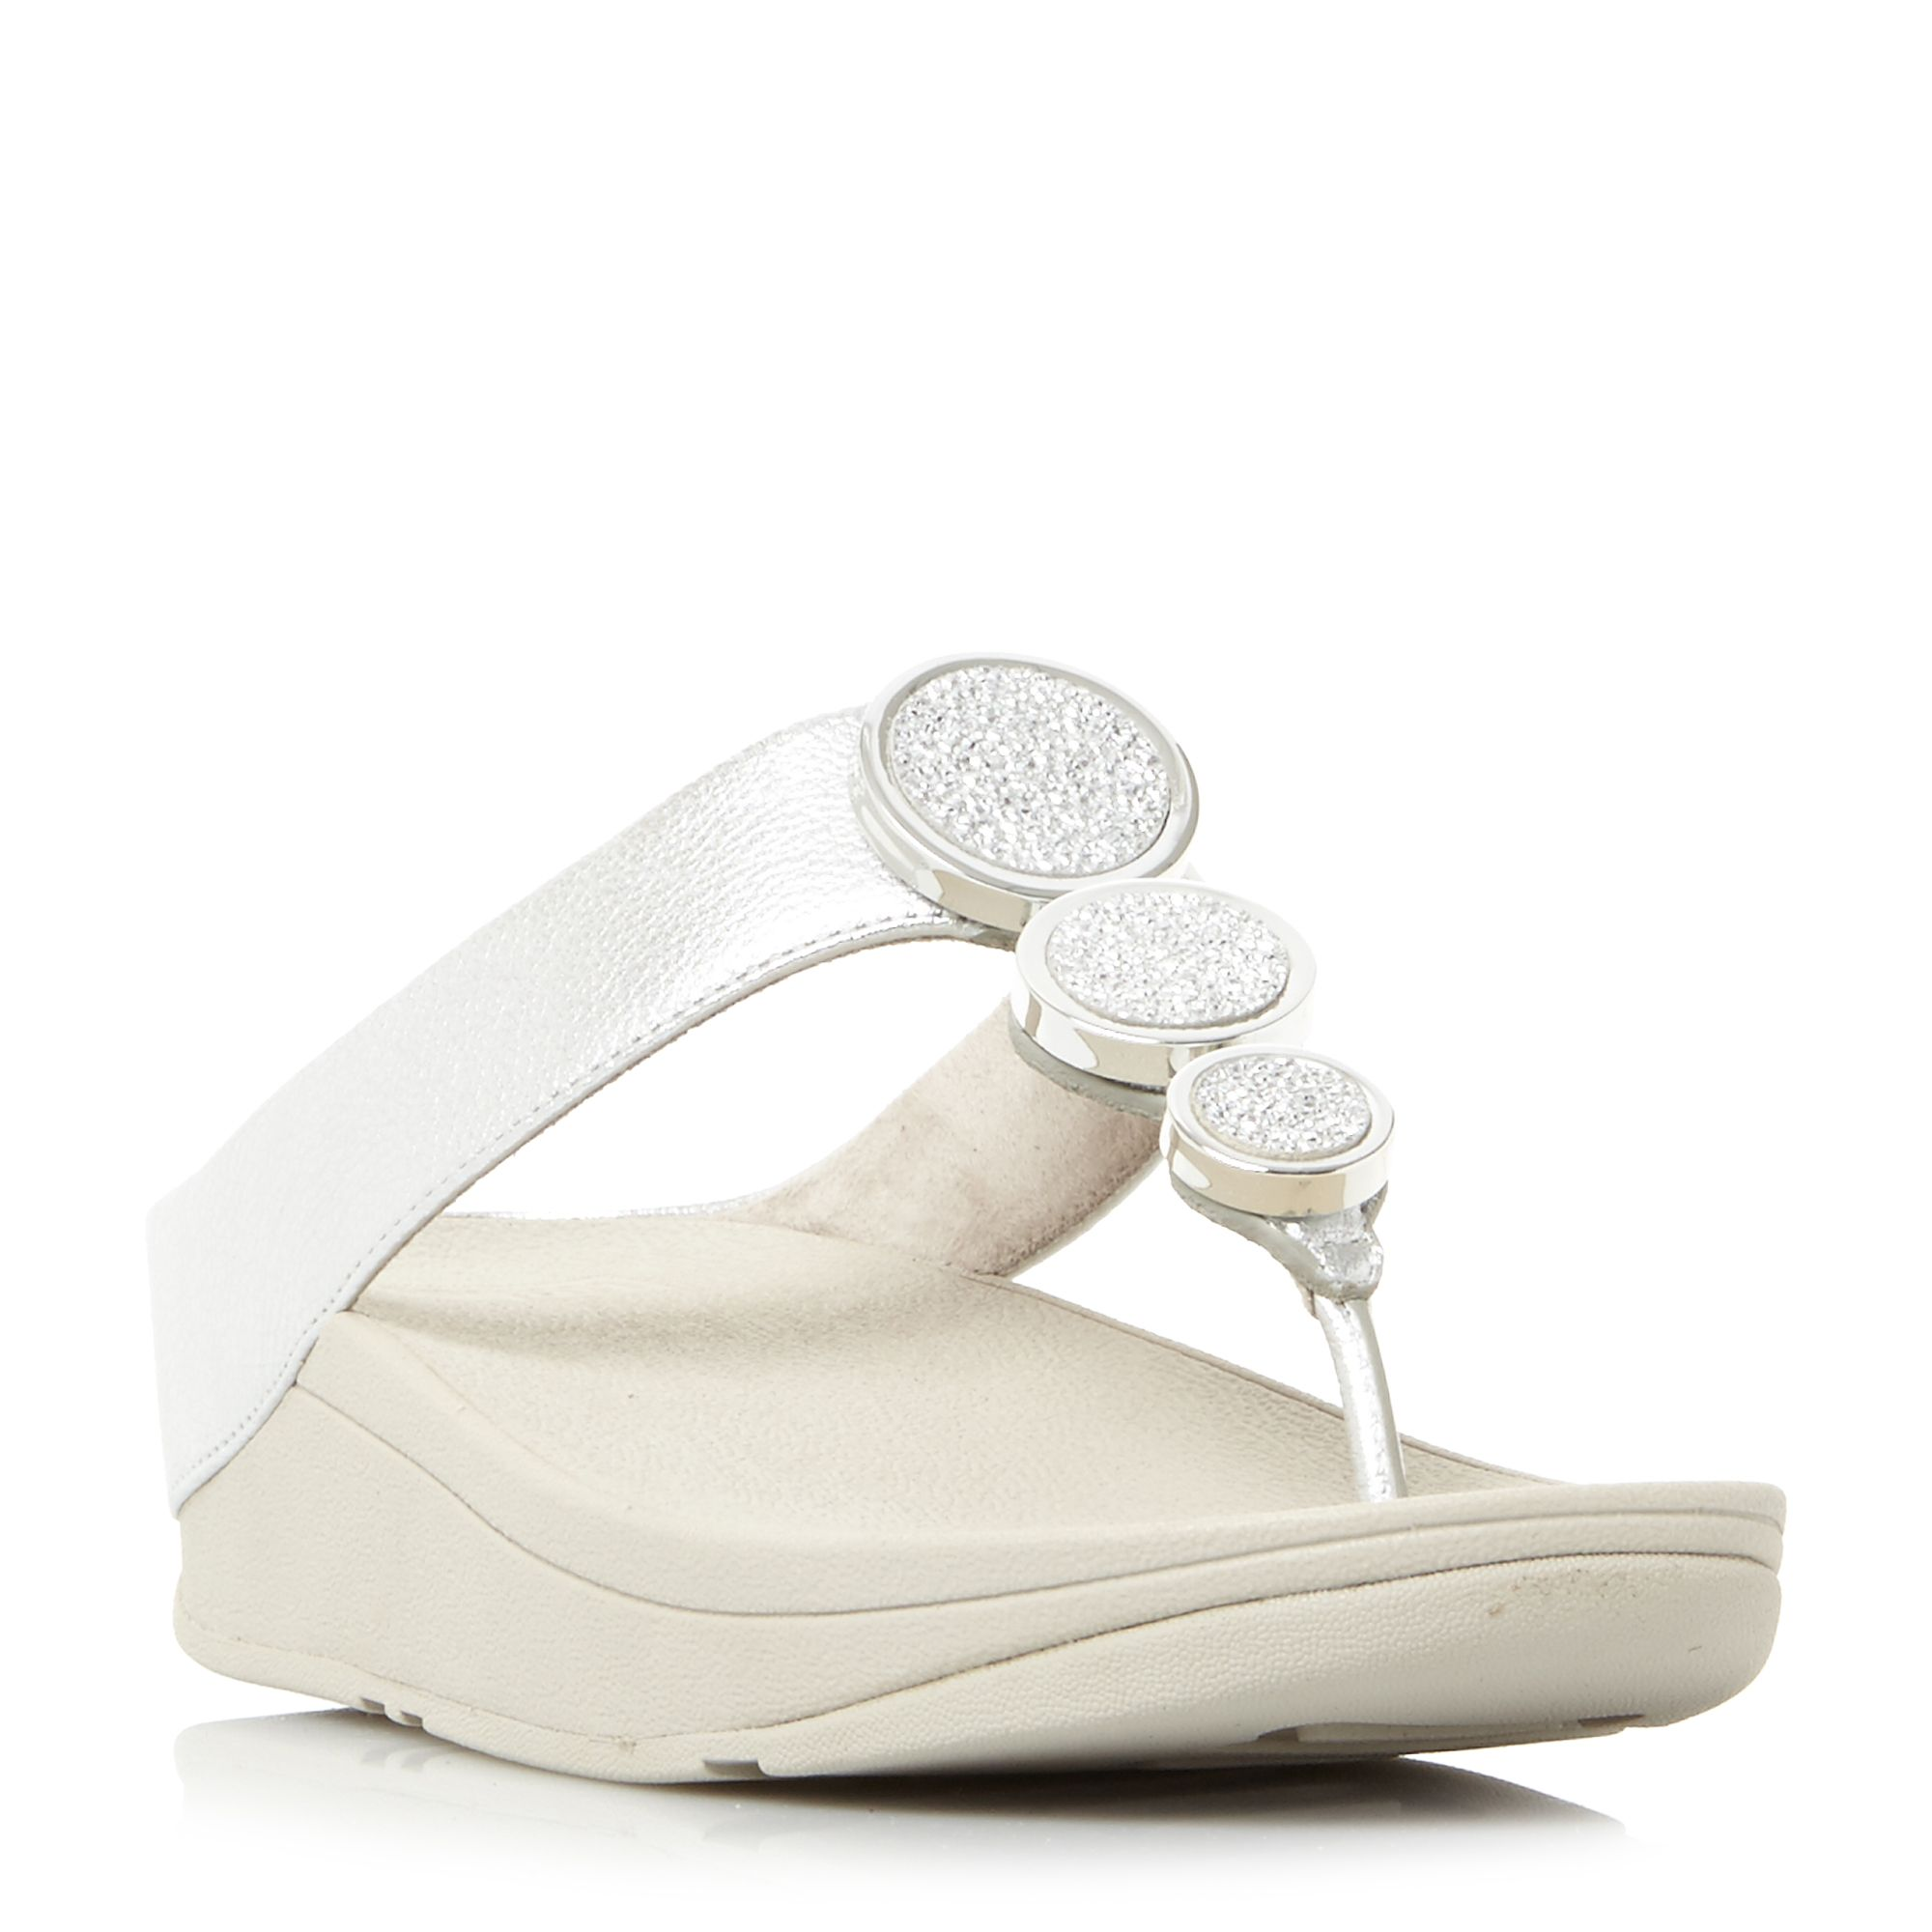 FitFlop Halo Metal Trim Toepost Wedge Sandals, Silver